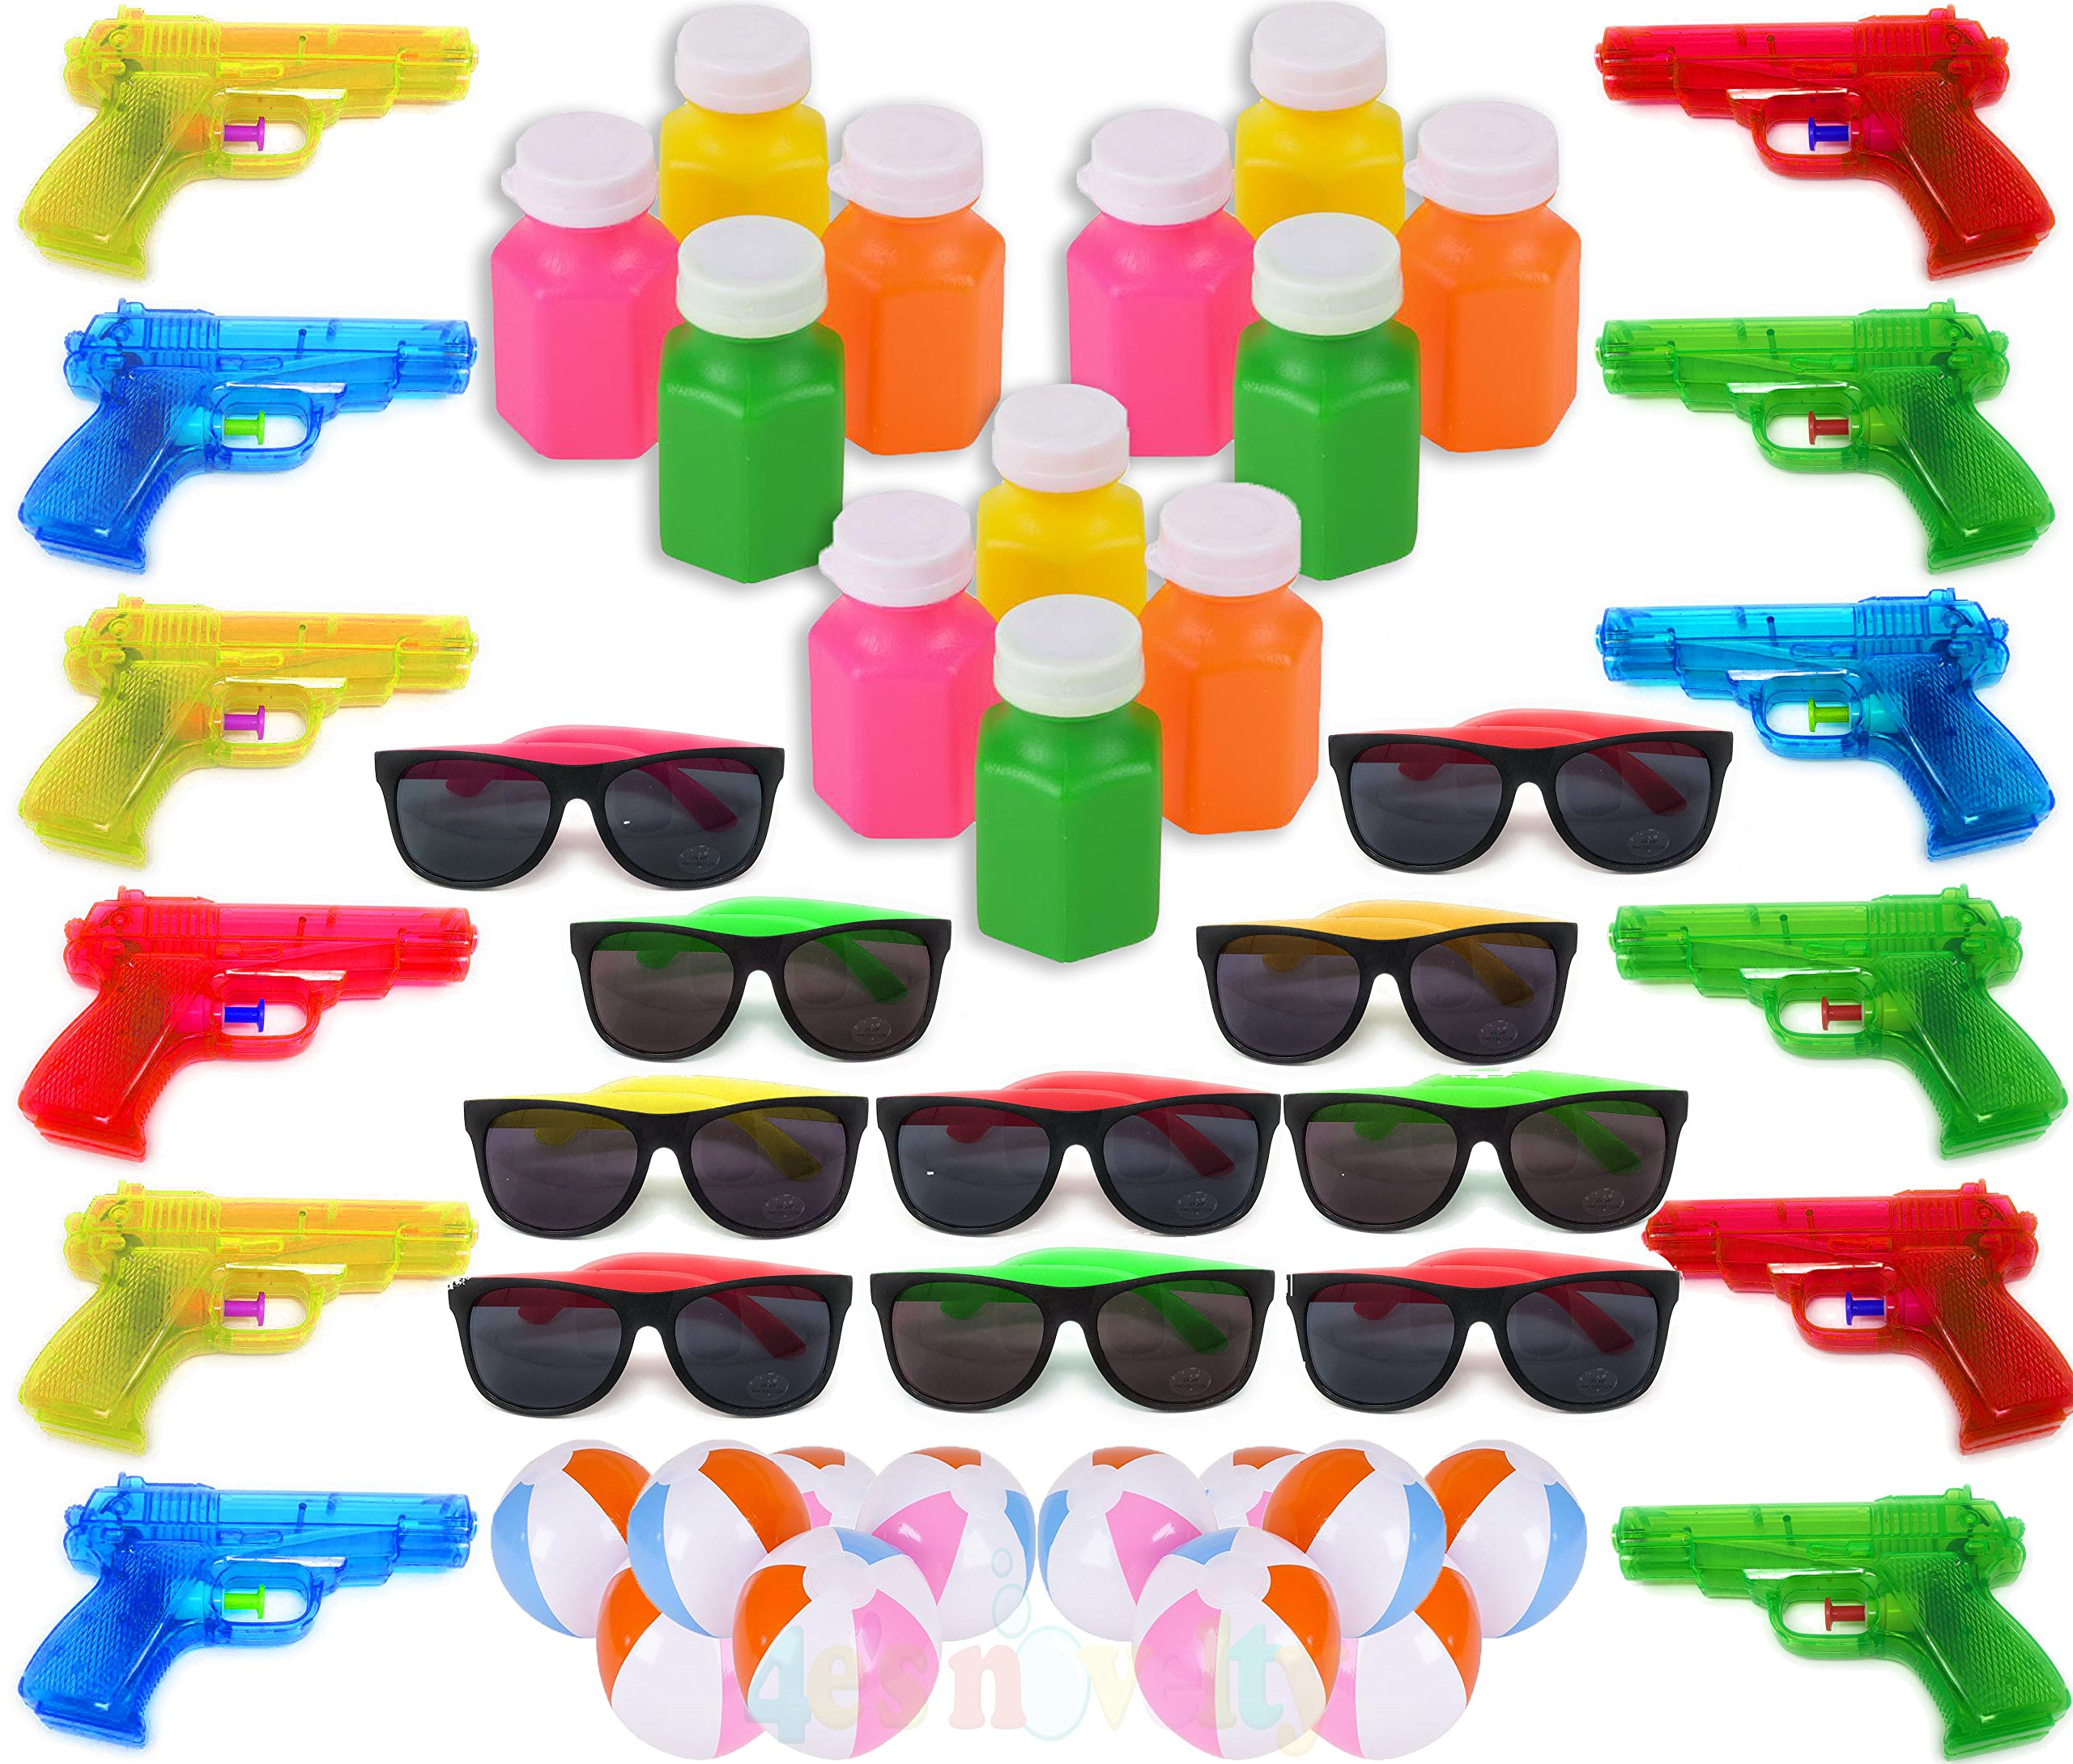 Pool Beach Party Favors Bulk, 48 Pack Kids Summer Fun Toys, Birthday Parties Supplies for Boys Girls, Includes, 12 Water Guns 12 Inflatable Beach Balls 12 Neon Sunglasses 12 Bubbles 4E's Novelty